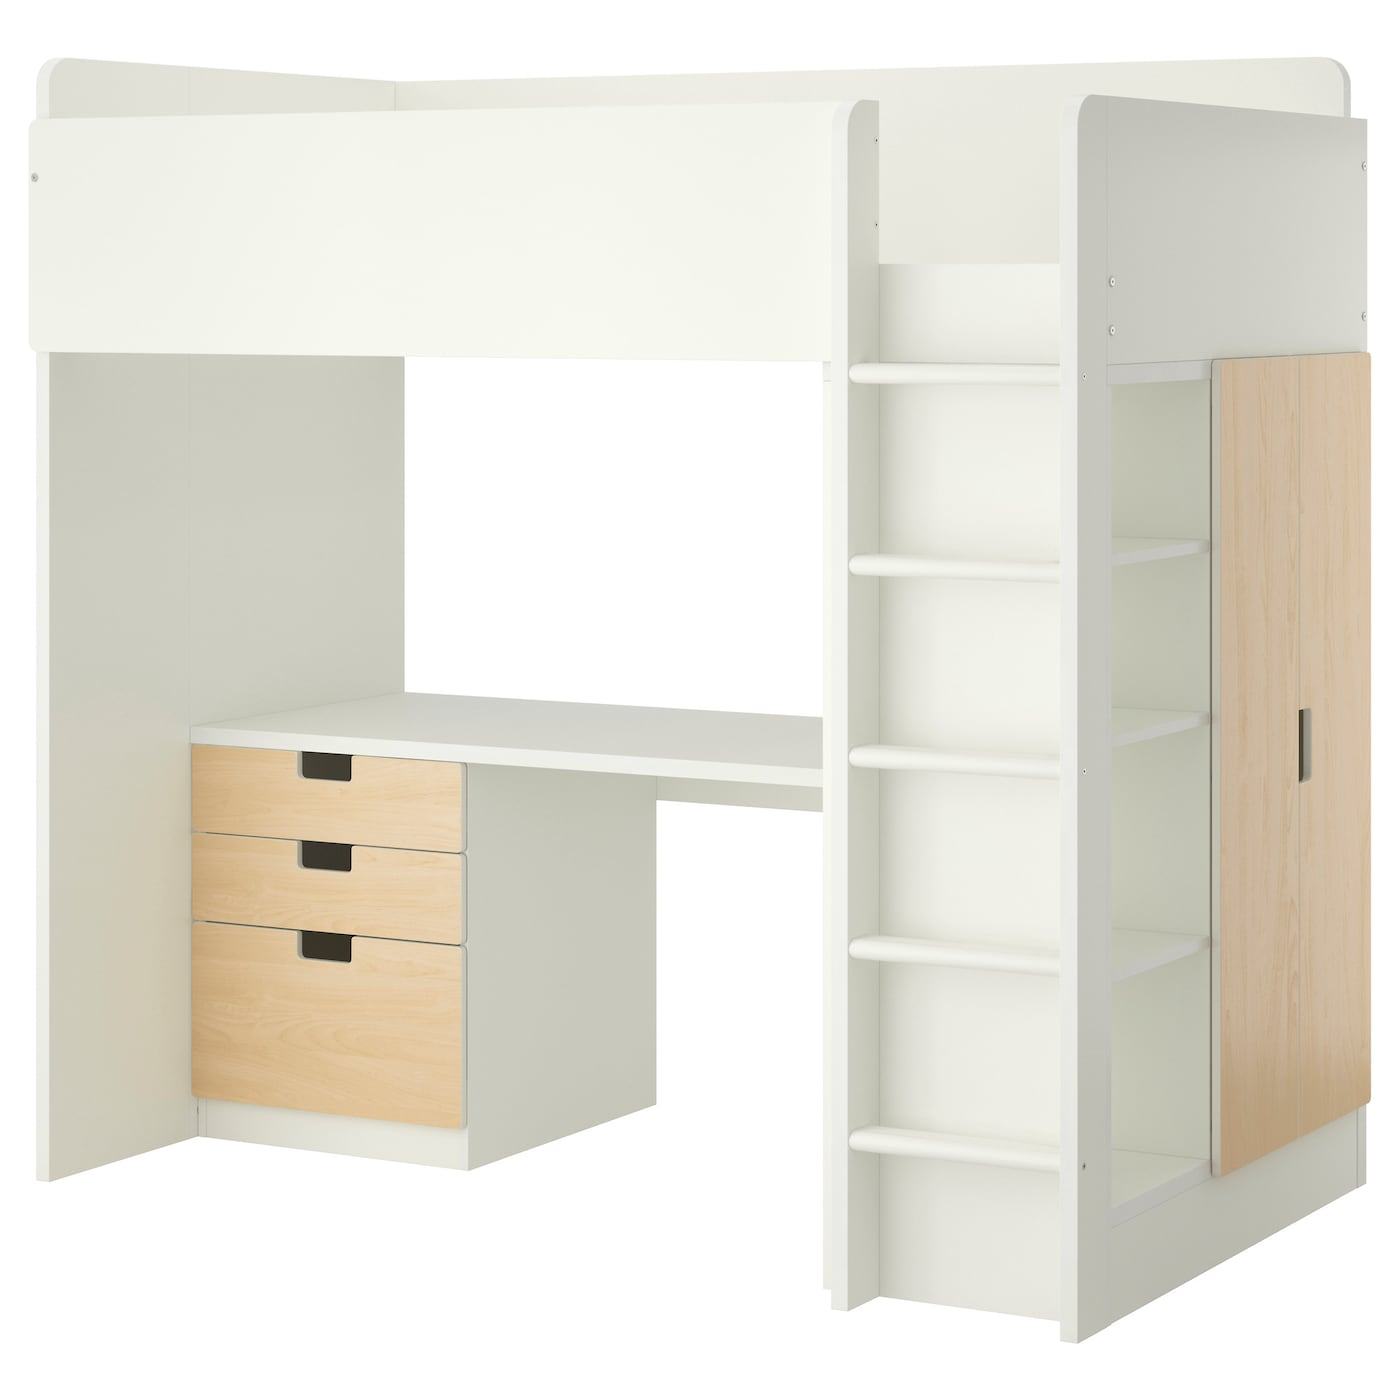 d tsk ikea katalog 2016 n bytek online 5 str nka. Black Bedroom Furniture Sets. Home Design Ideas